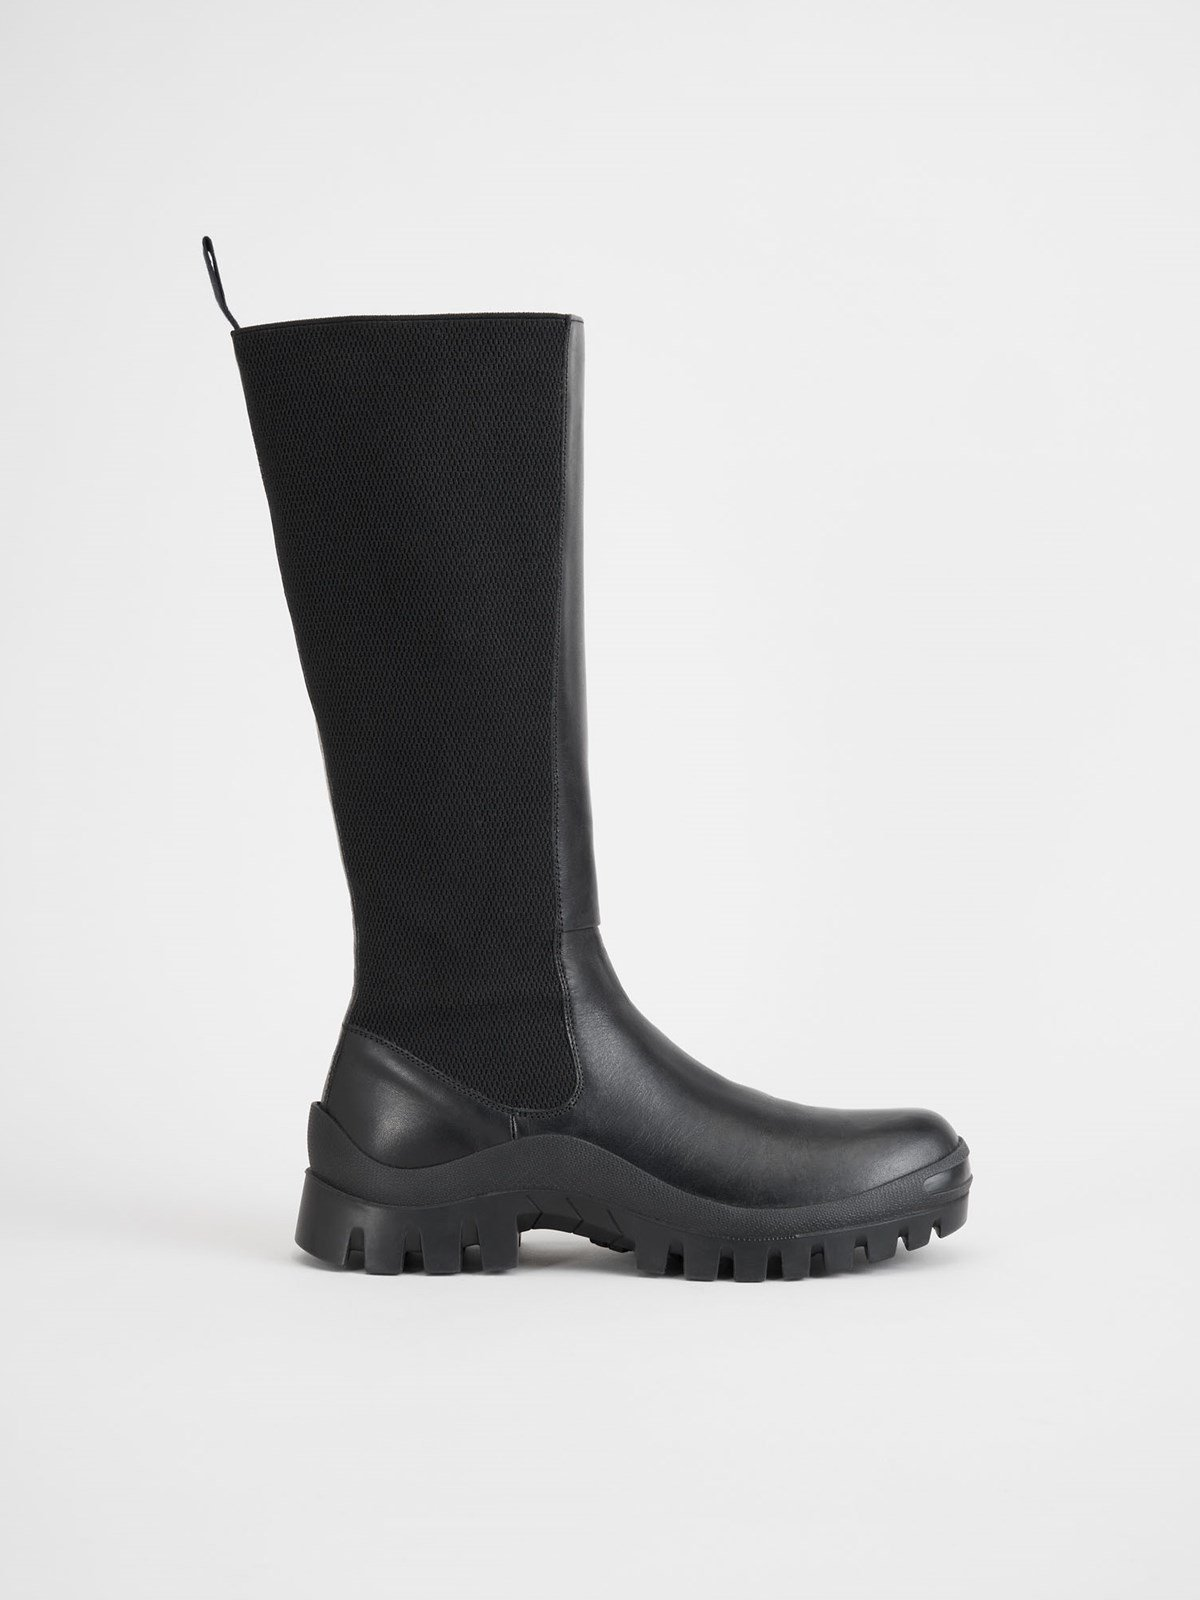 Bitonto Black Knee High Boots